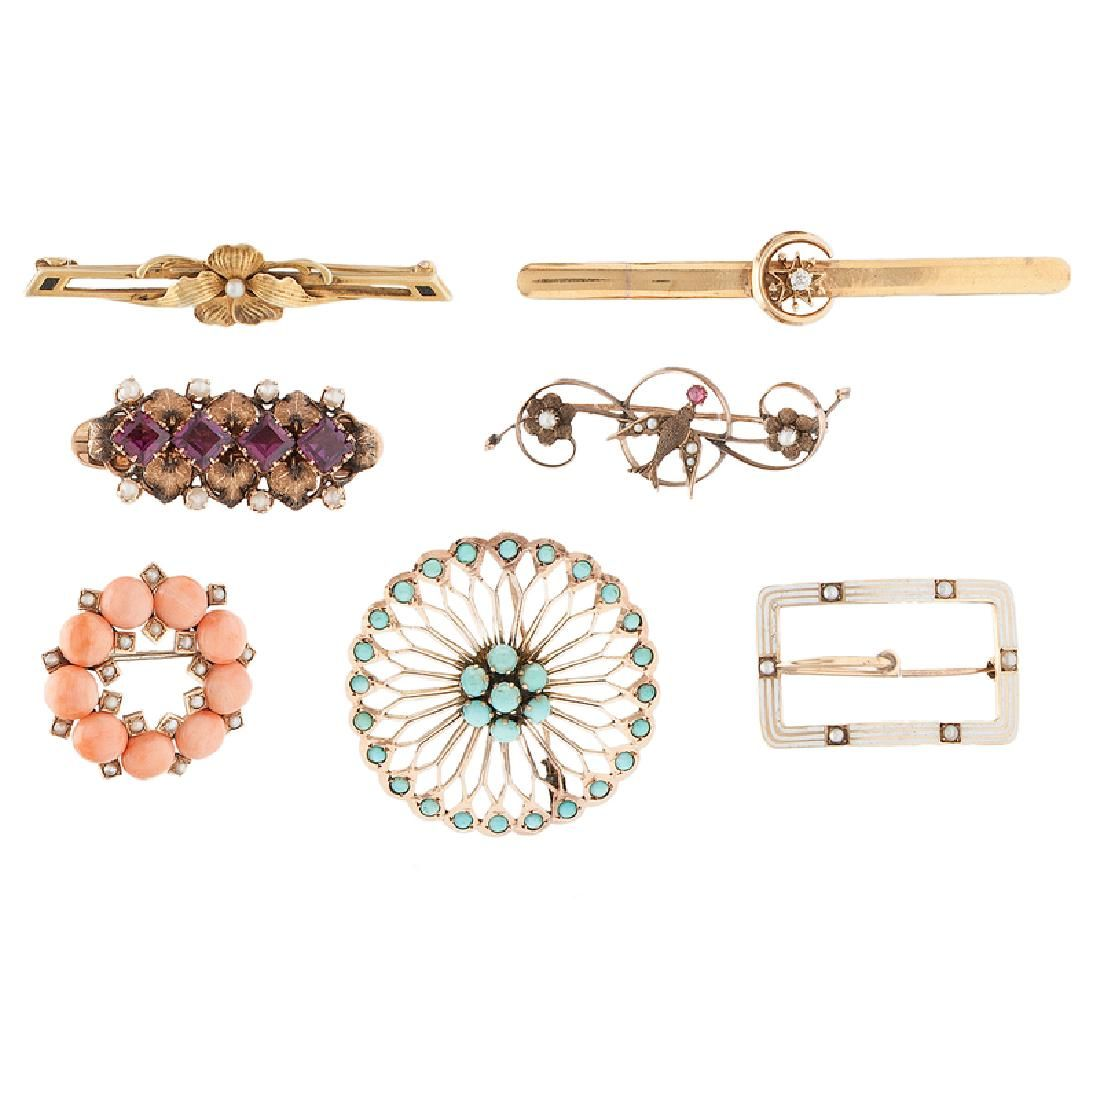 Victorian and Edwardian Brooches in Karat Gold